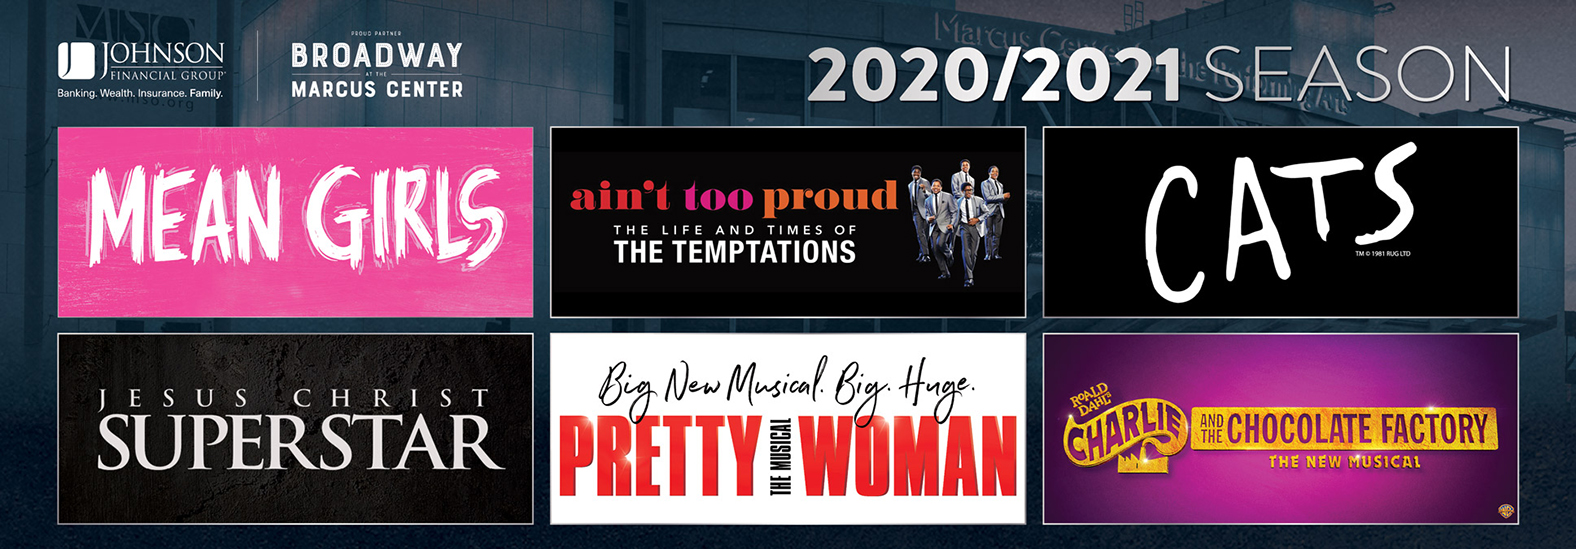 Broadway at the Marcus Center in Milwaukee 2020